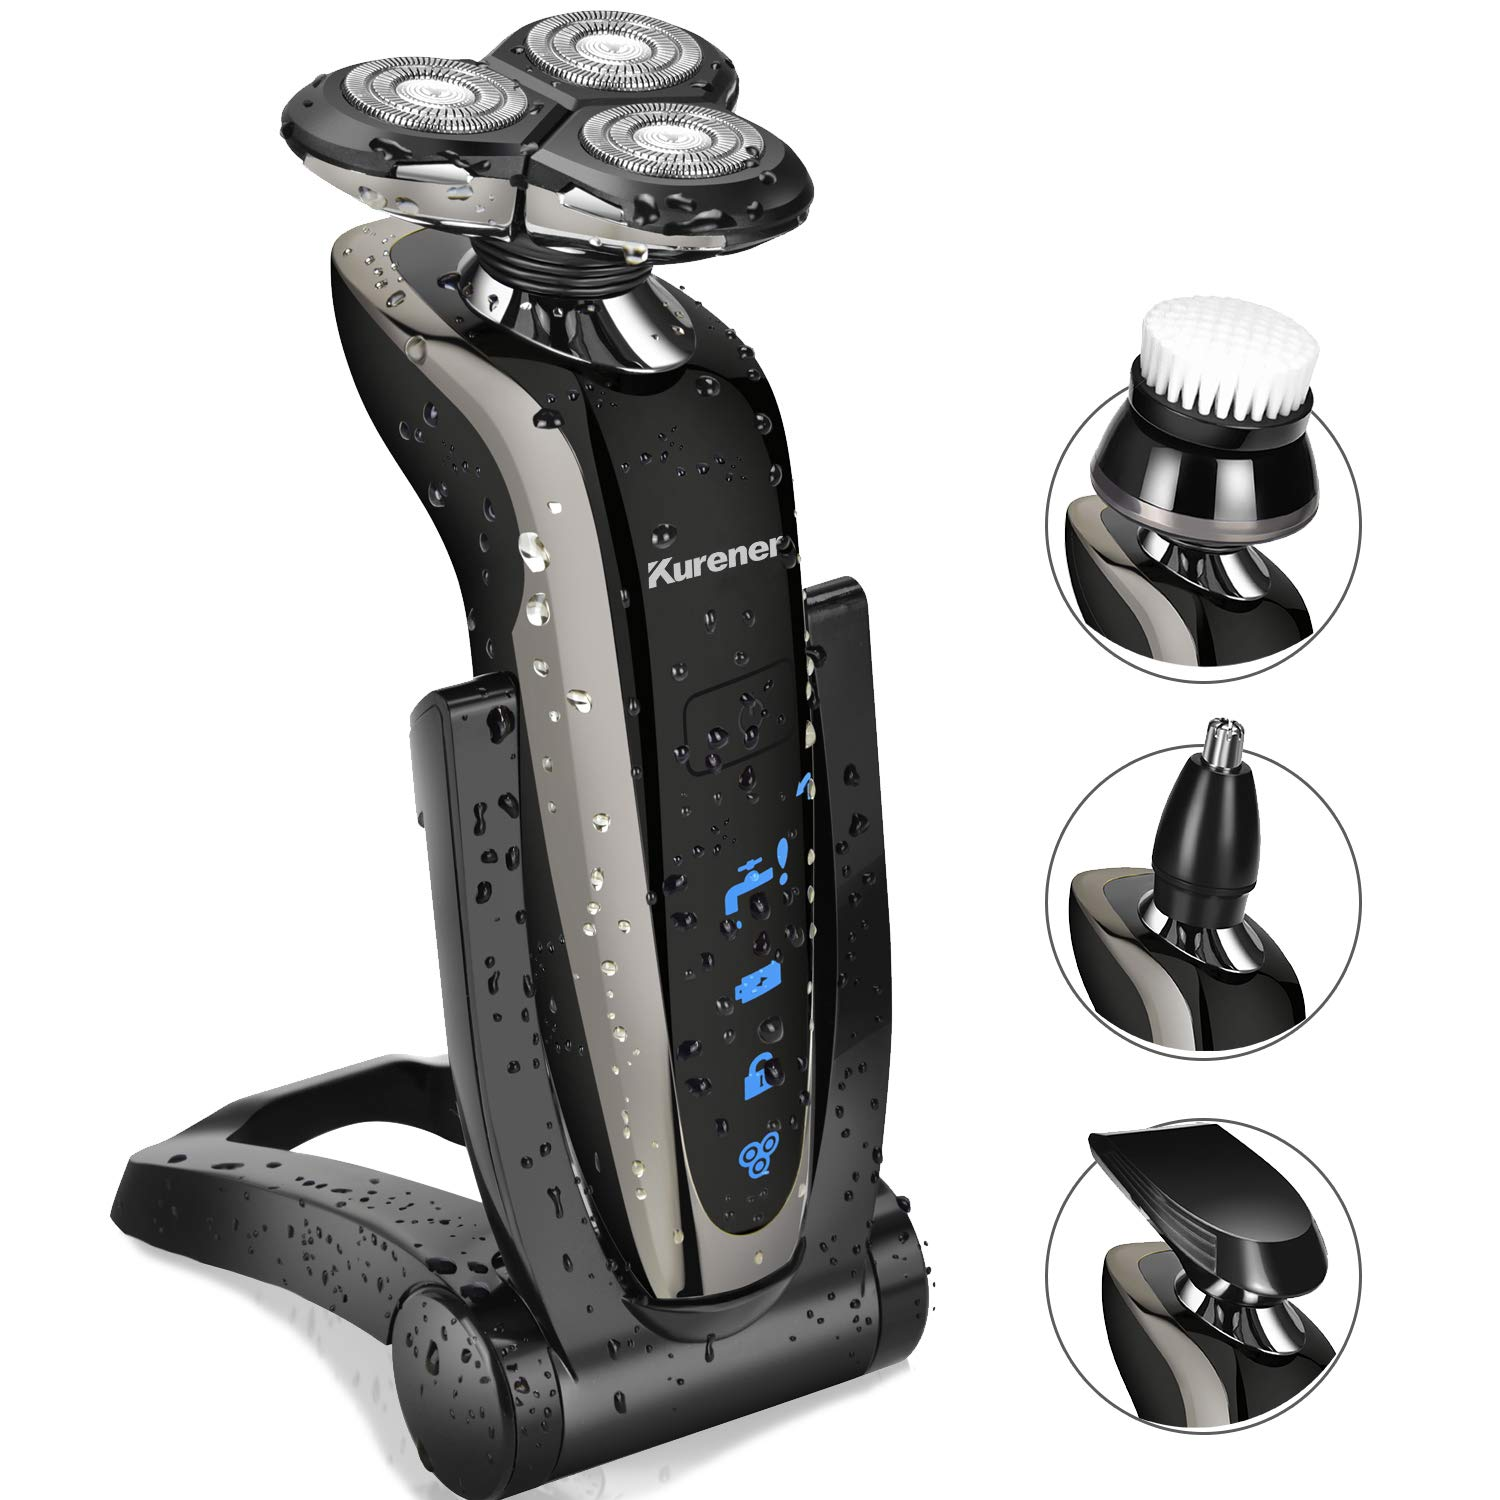 Kurener Electric Shaver Razor for Men Rechargeable 100% Waterproof Rotary for Shaving With Nose Trimmer Sideburns Trimmer Face Cleaning Brush